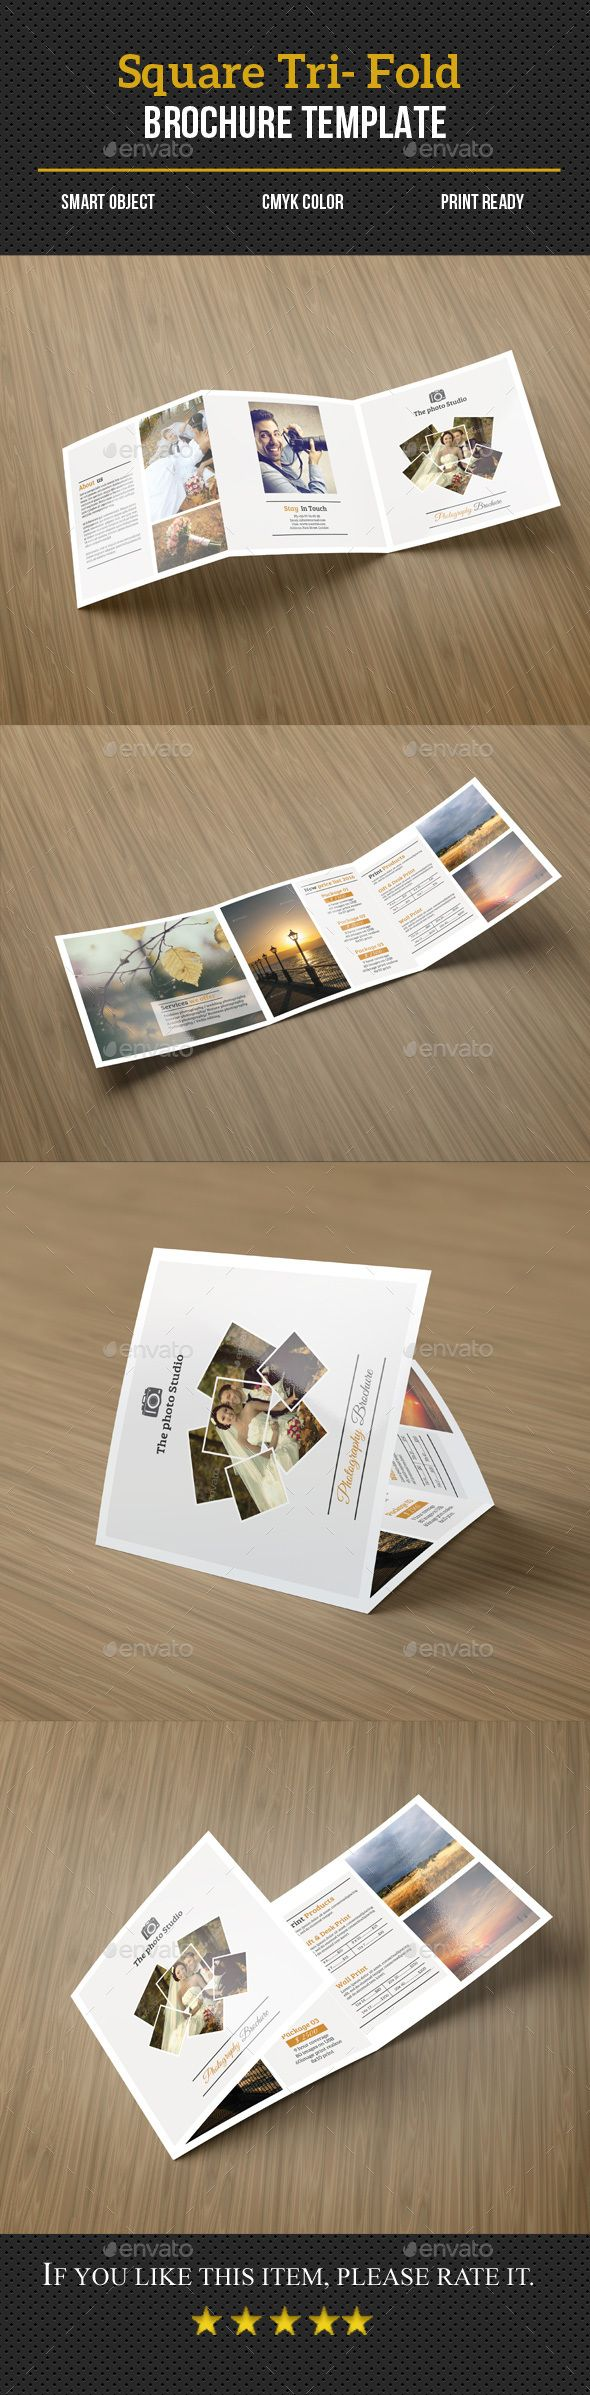 Photography Pricing List Brochure Brochure Template Brochures - Price list brochure template